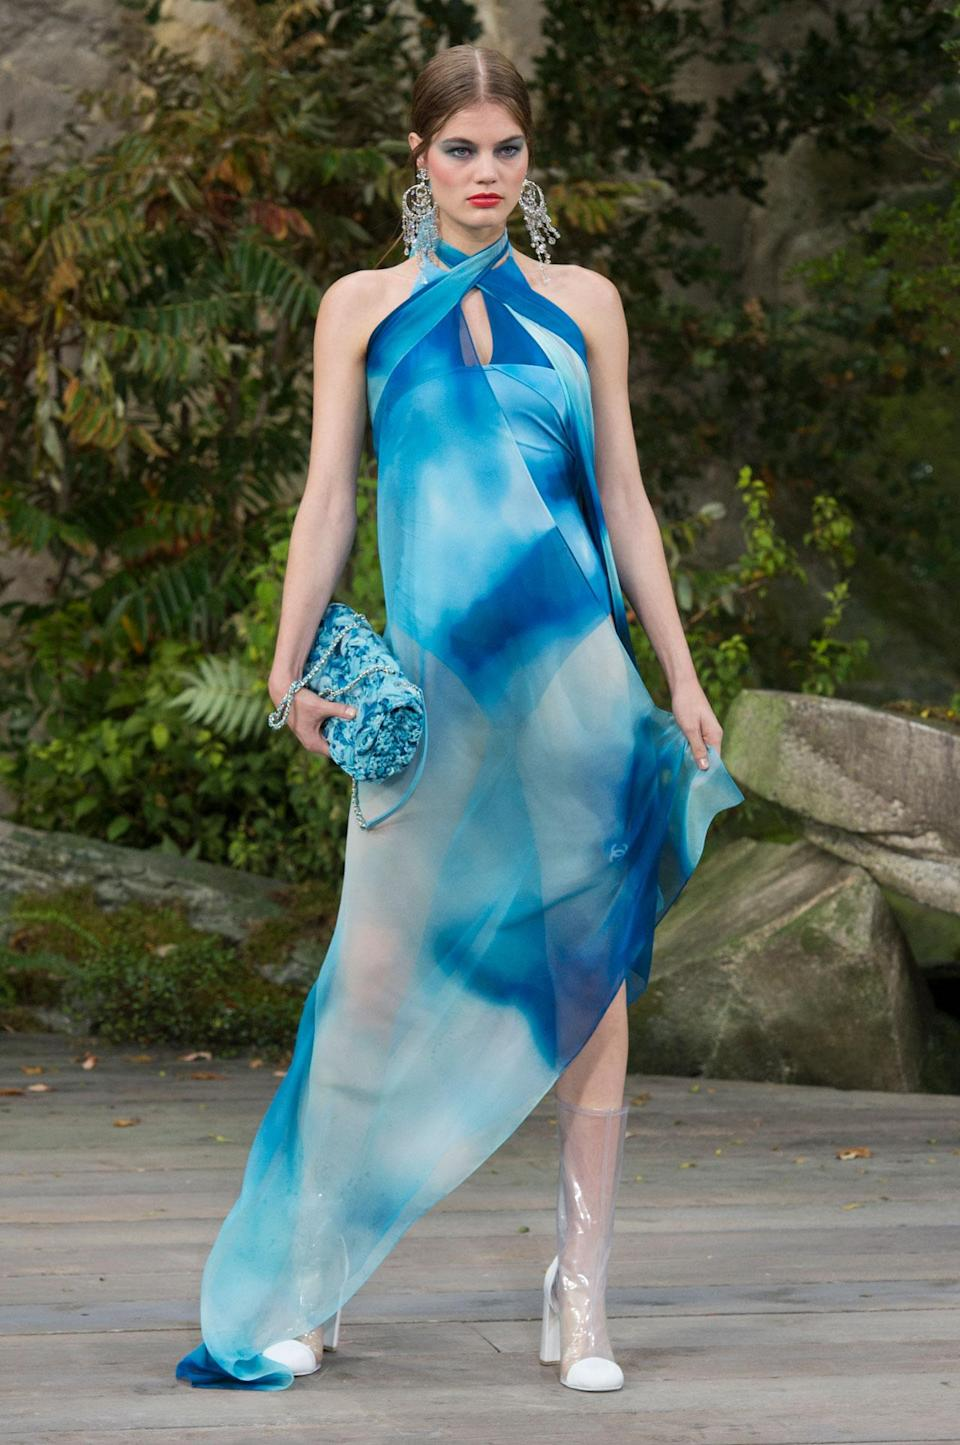 <p>Soft blue tie dye halter dress from the SS18 Chanel collection. (Photo: ImaxTree) </p>